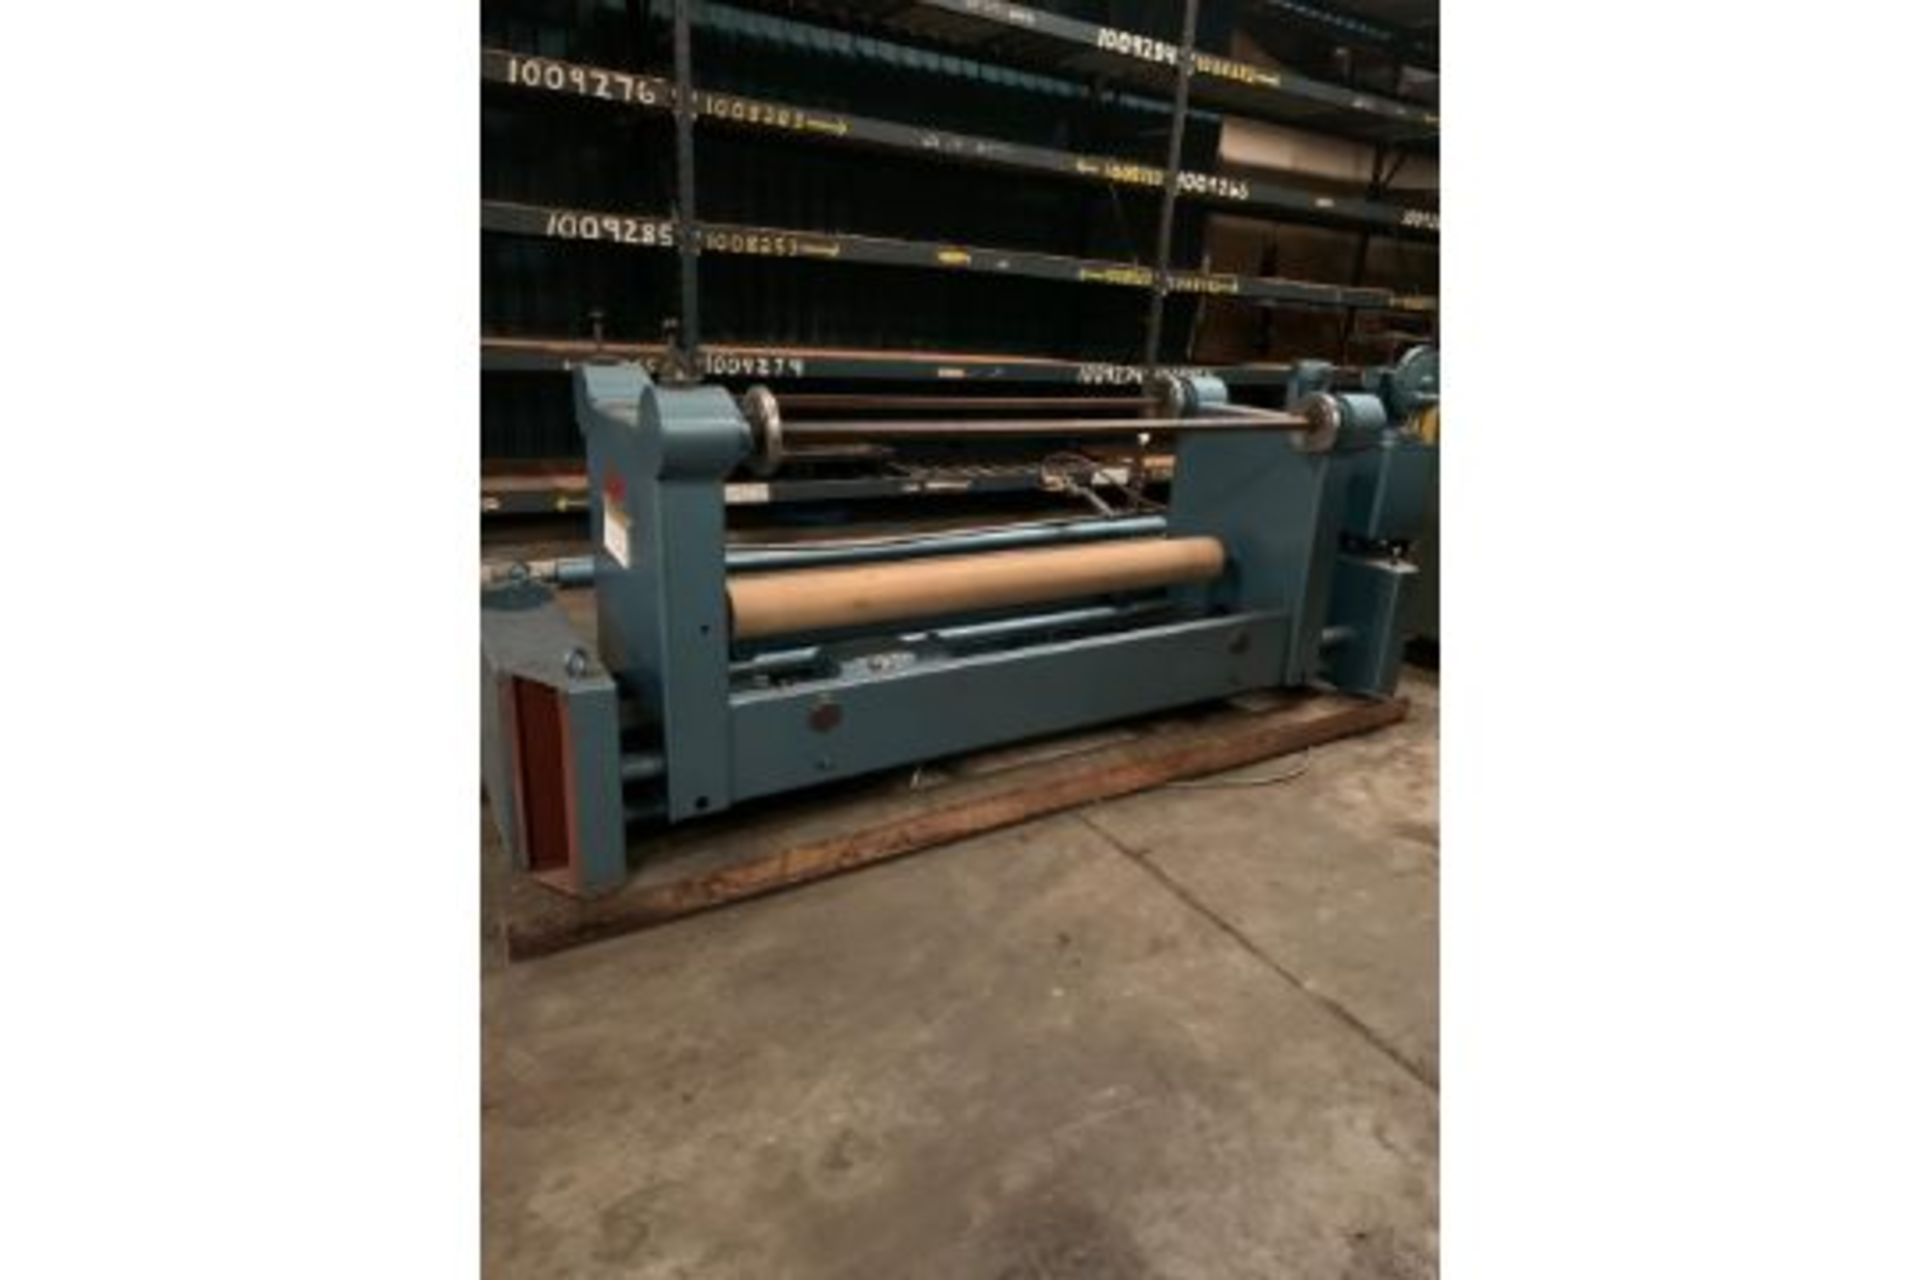 """Lot 21113 - ISOTEX Winding and unwinding 72"""" Age guiding systems 3HP 220 Volts, Rigging Fee: $50"""